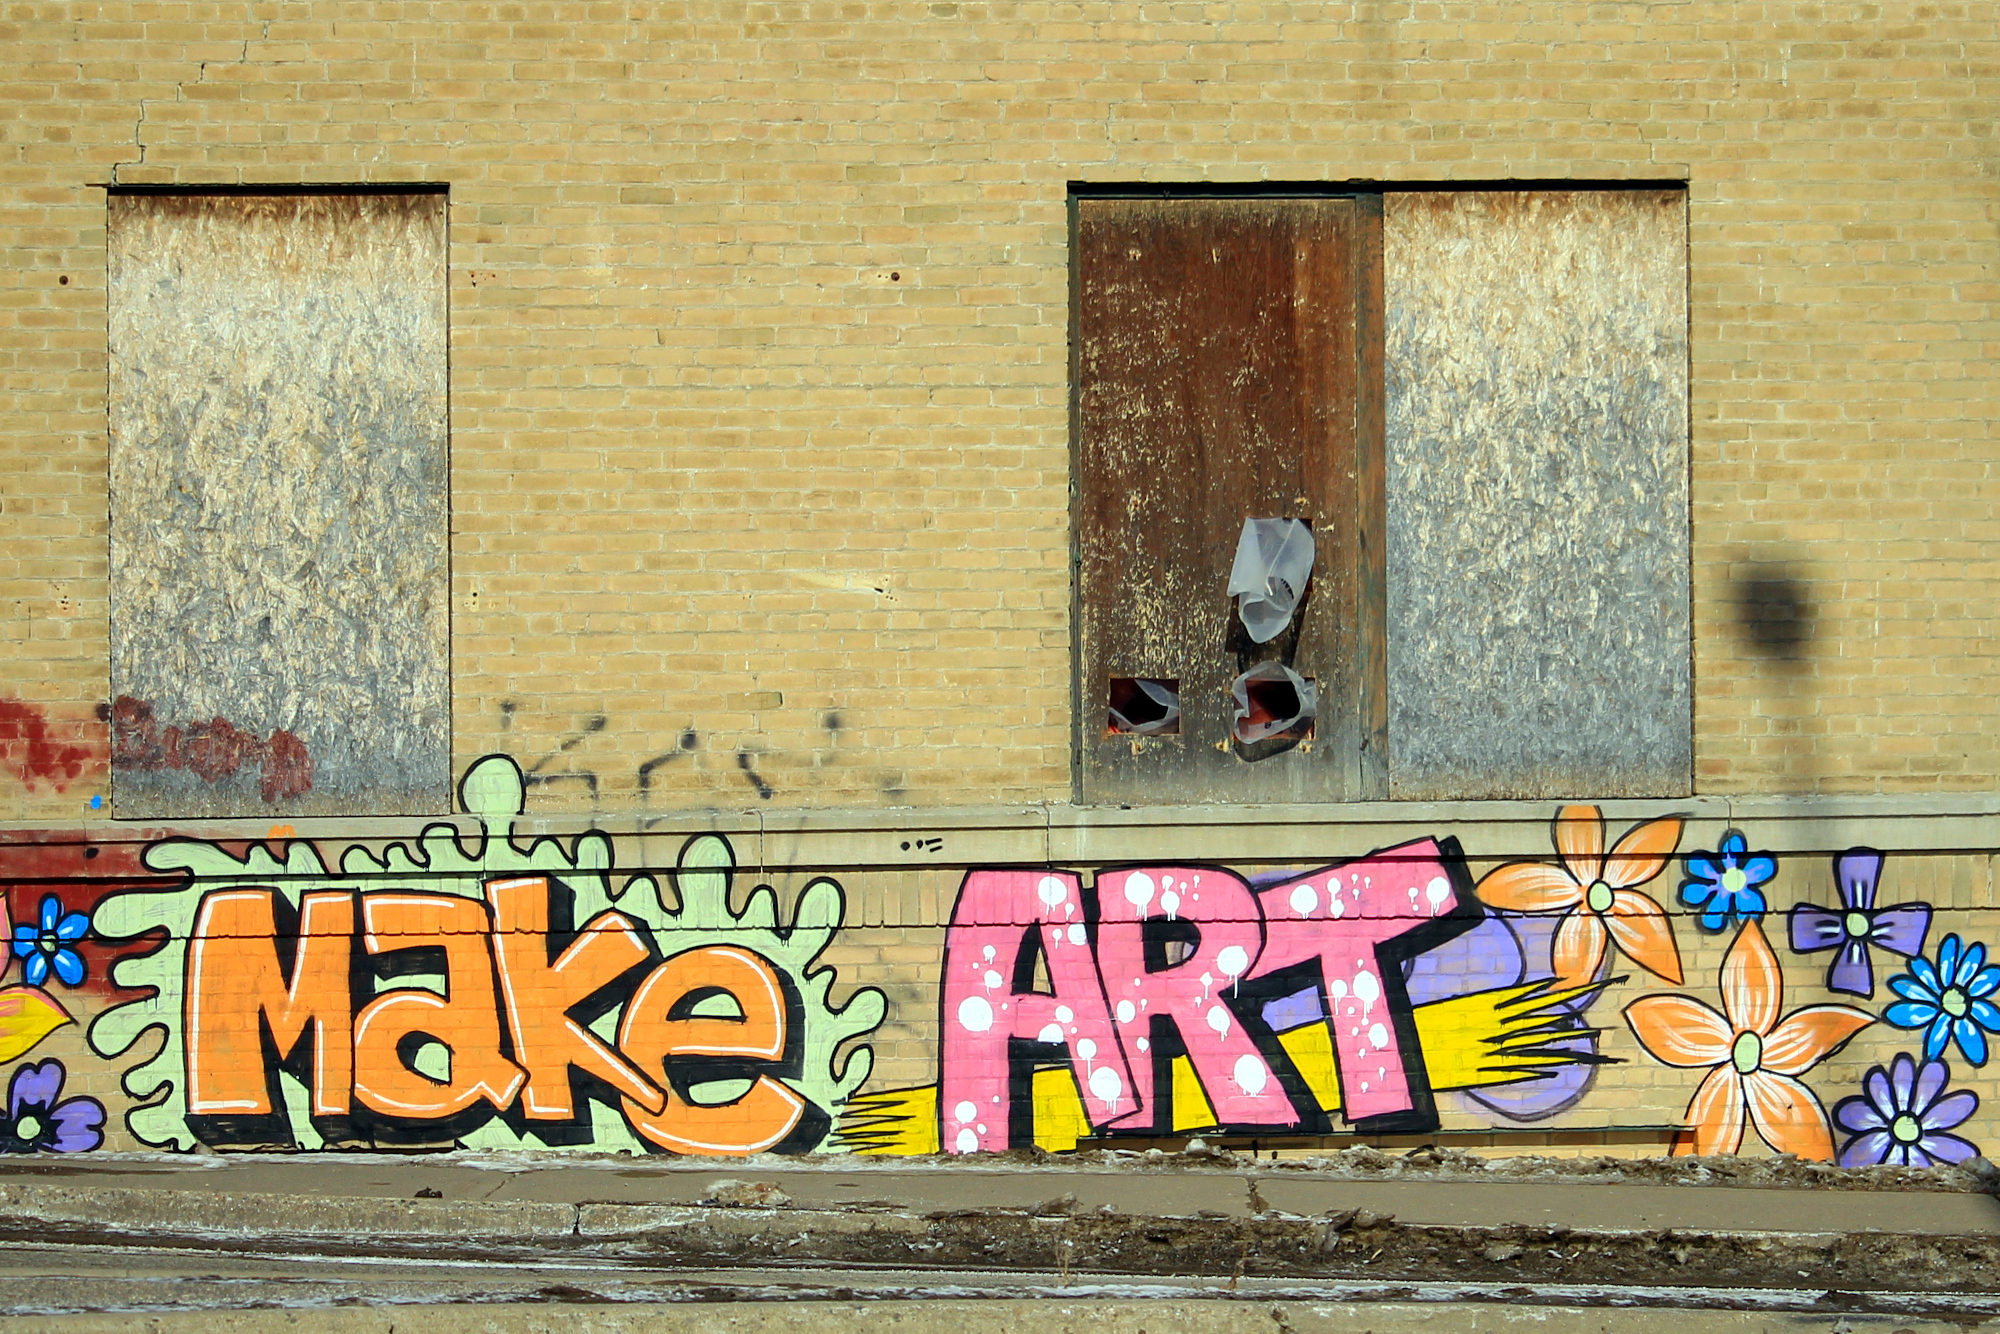 MAKE ART spray-painted on a building